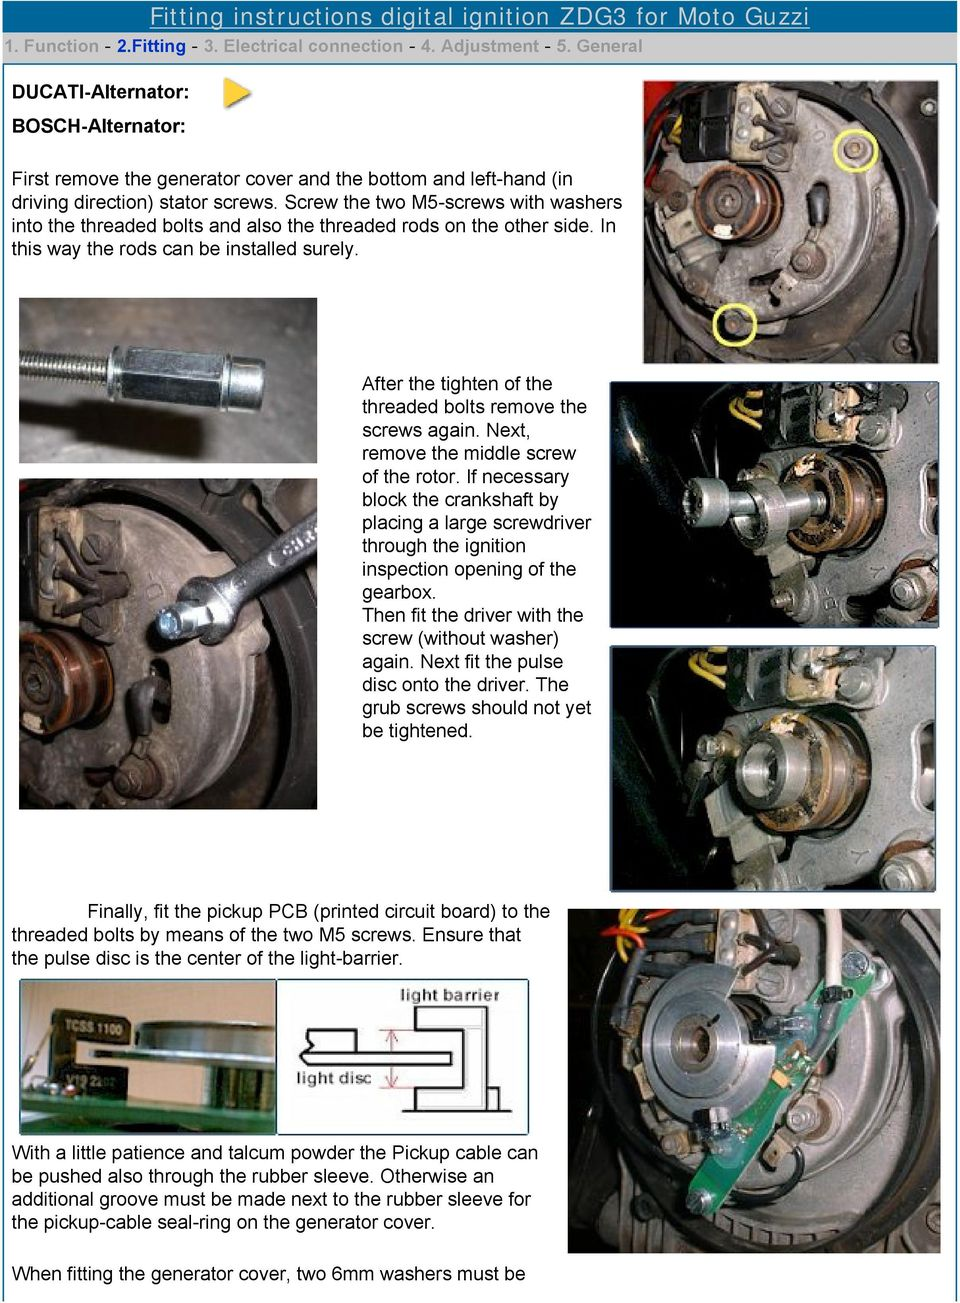 Digital Ignition Zdg3 Pdf Spark Wiring 1994 Volvo Screw The Two M5 Screws With Washers Into Threaded Bolts And Also